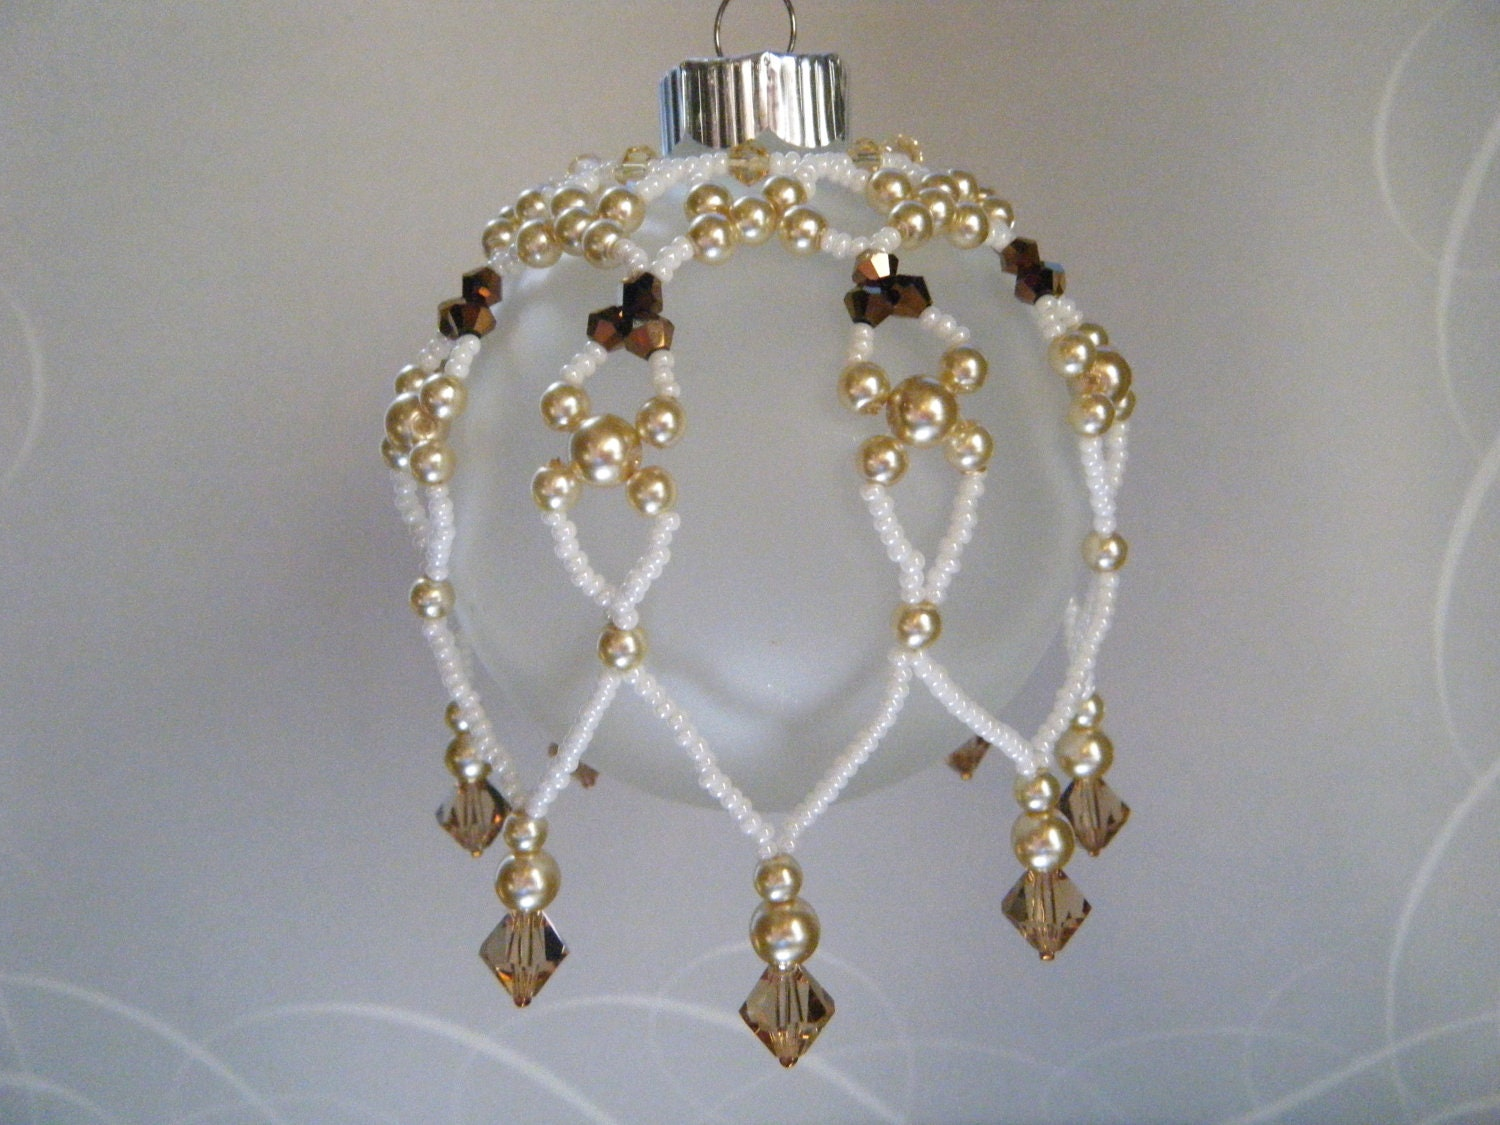 Beaded Christmas Ornament Cover/ Christmas Tree Decorations / Gold and Bronze Crystals and Pearls